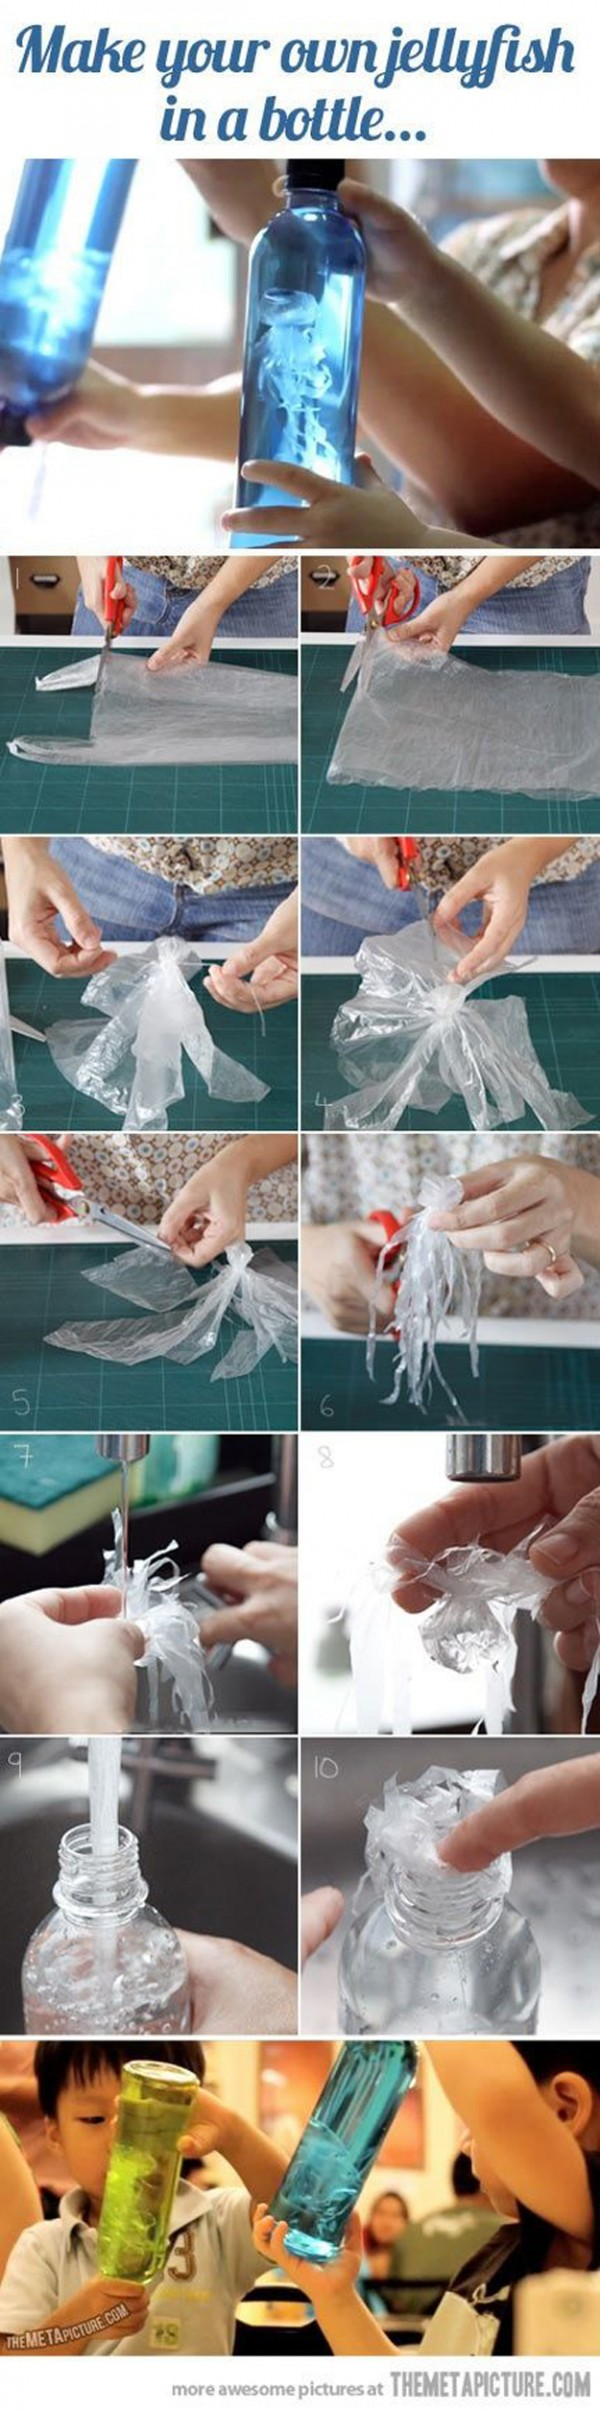 DIY-Kids-Crafts-Under-an-Hour-Jelly-Fish-in-a-Bottle